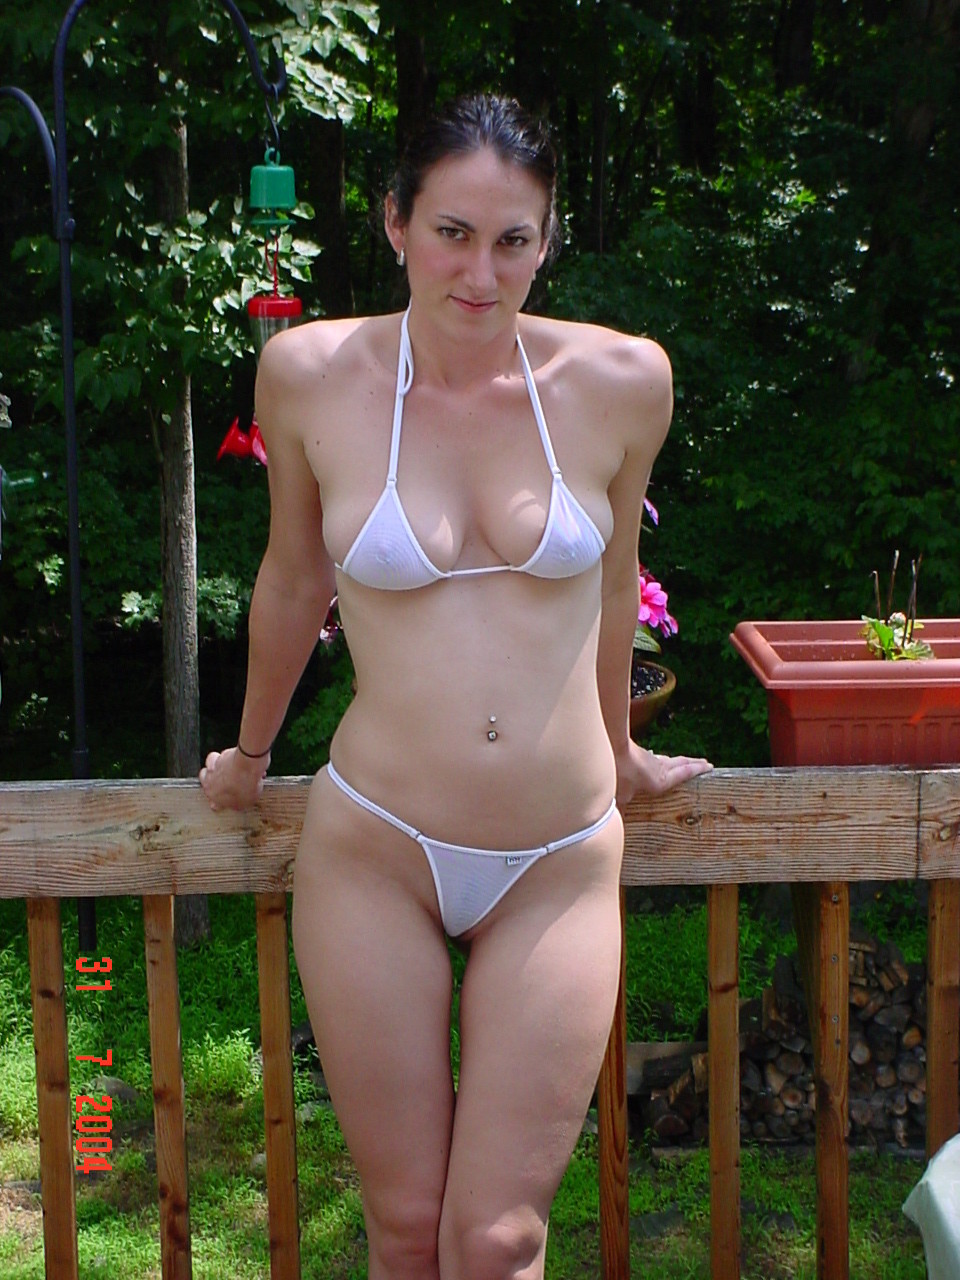 girl in backyard exposing herself in a seethrough bikini